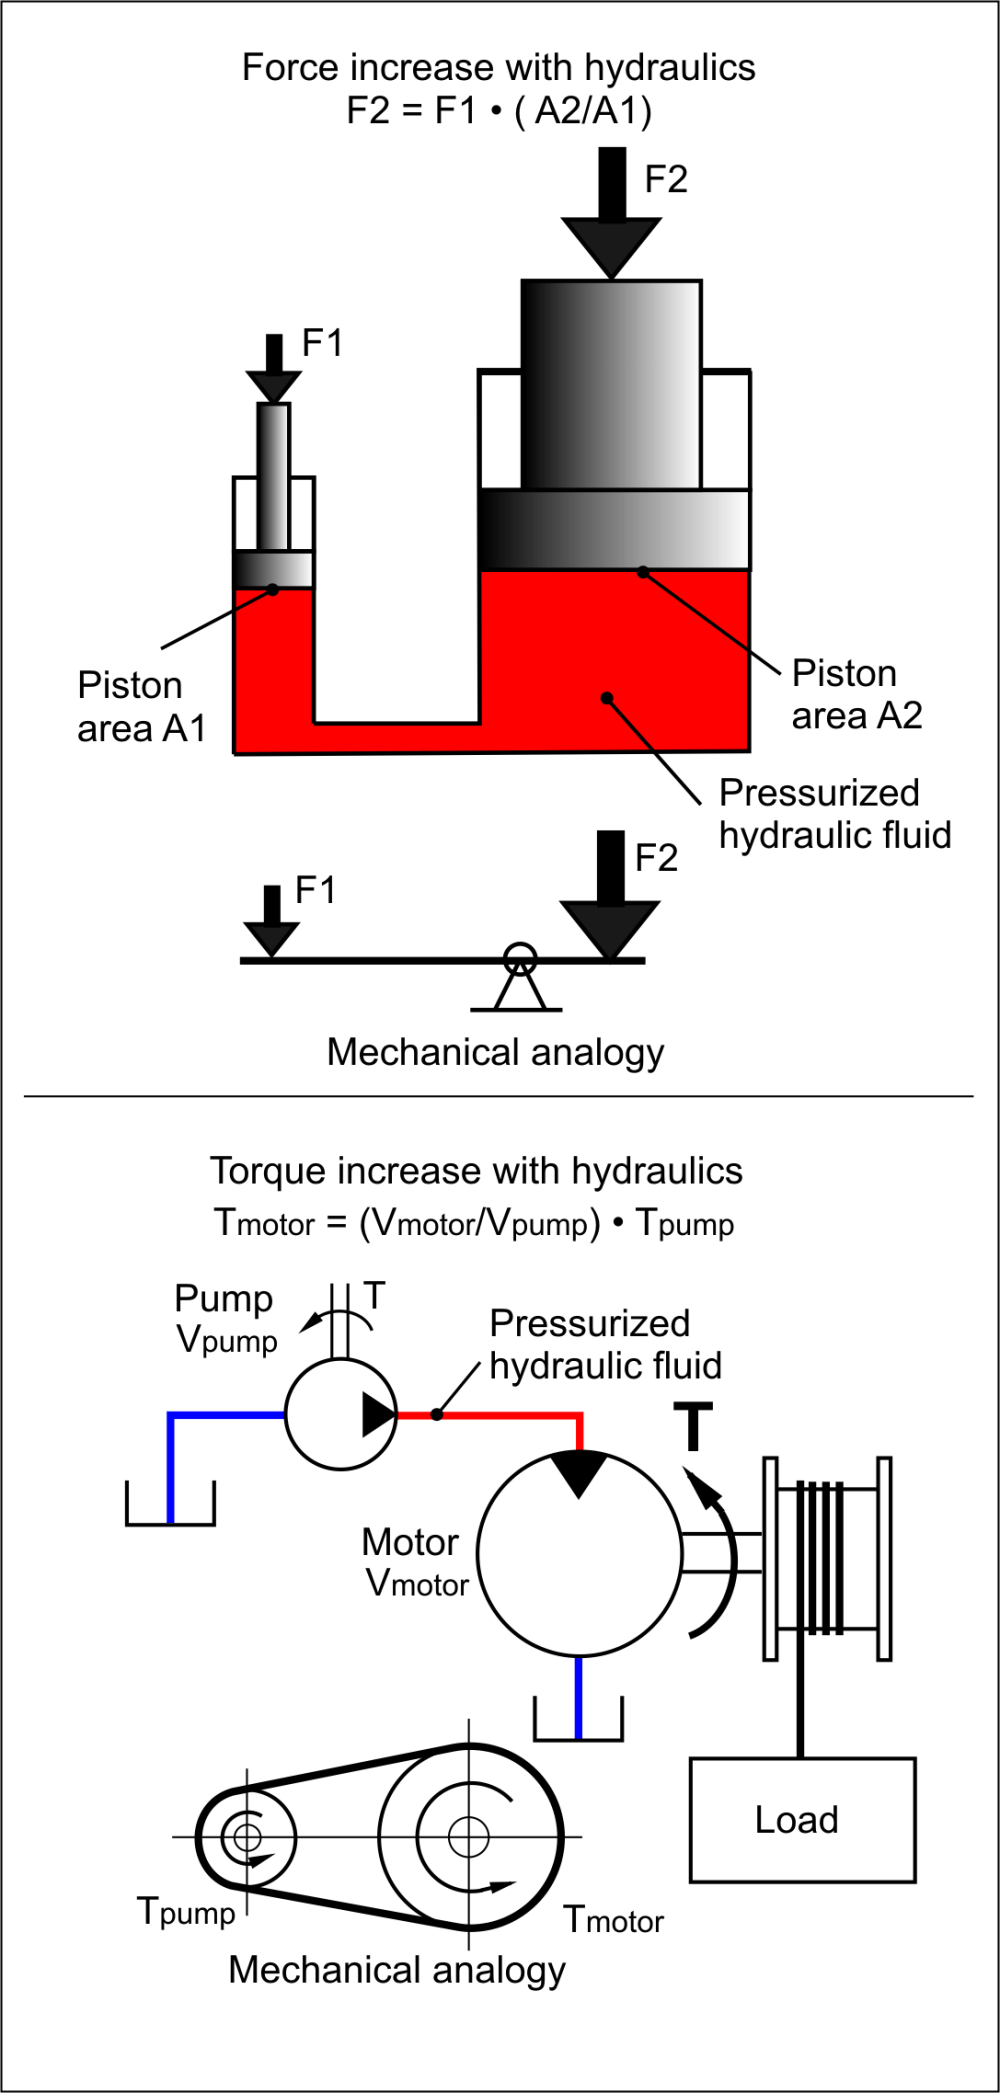 medium resolution of 25 image from https upload wikimedia org wikipedia commons e e7 hydraulic force torque 275px png